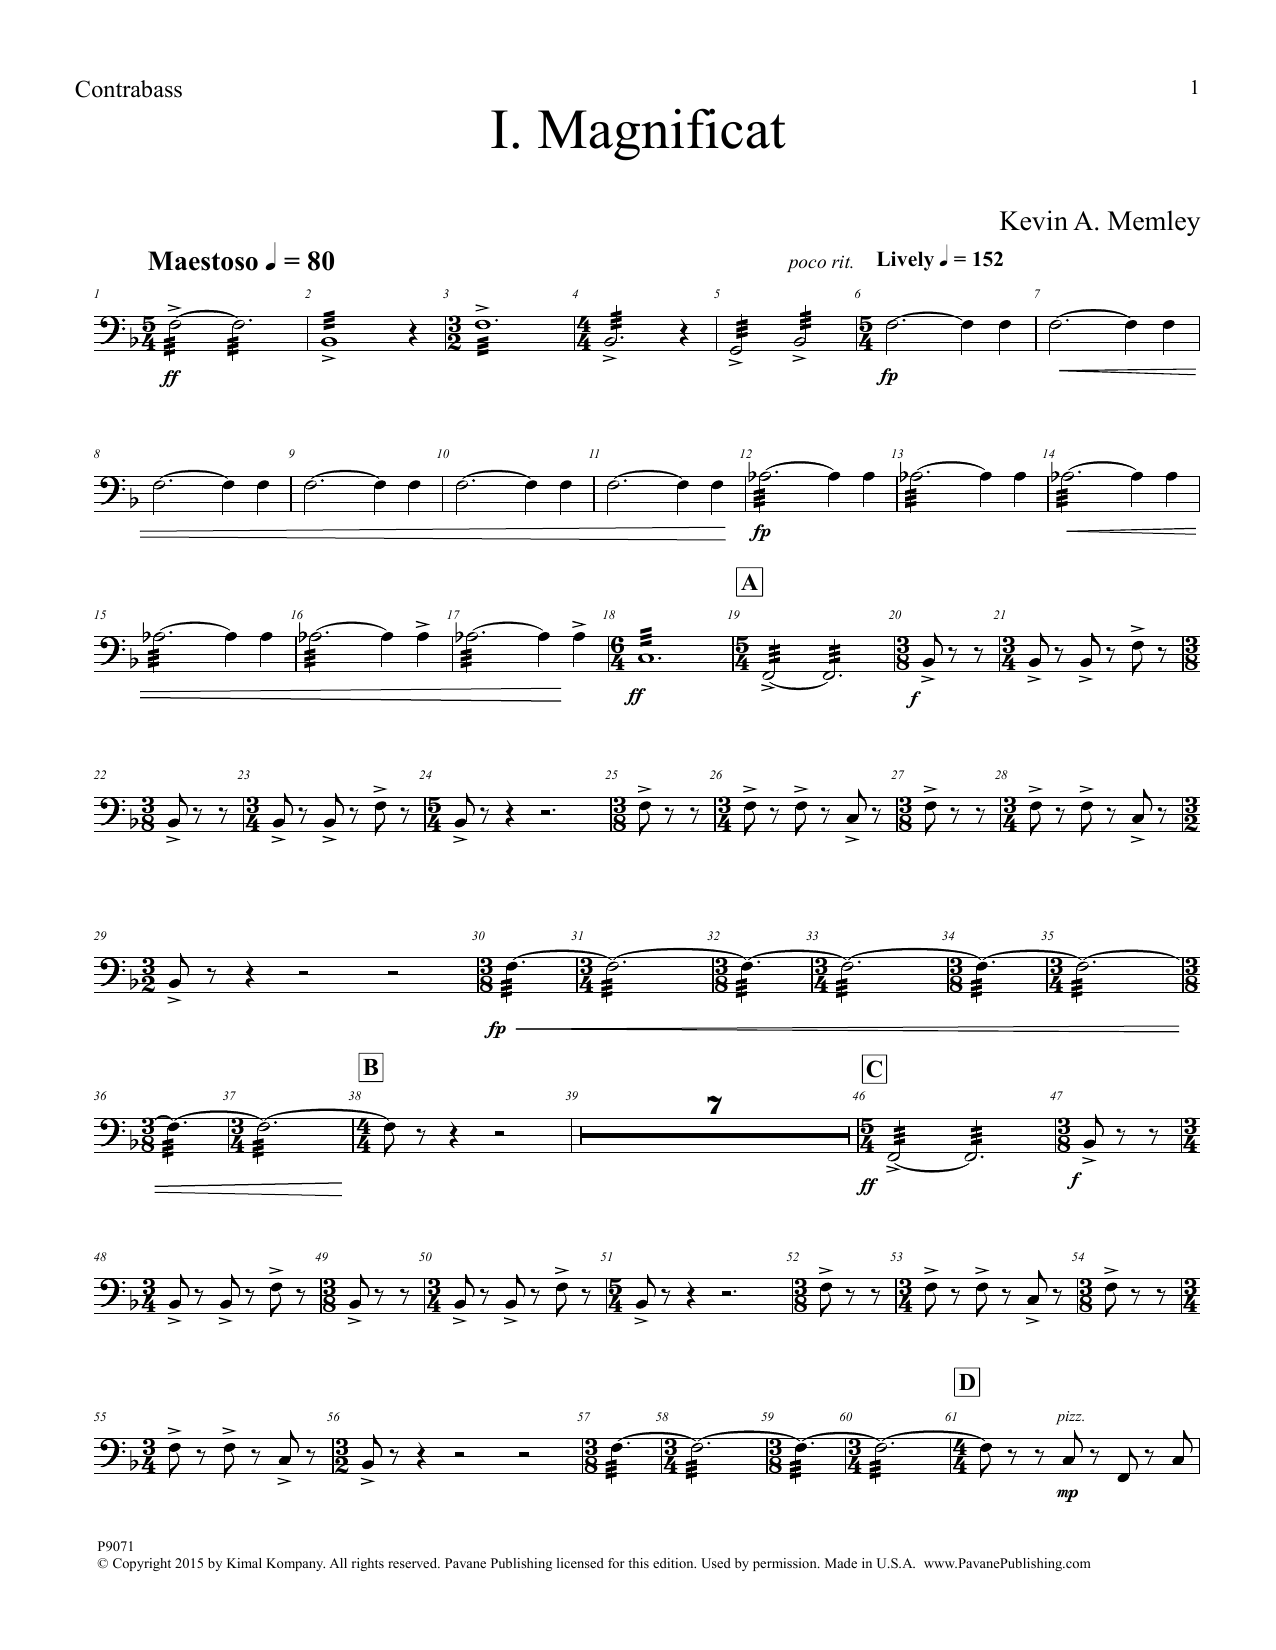 Kevin A. Memley Magnificat - Contrabass sheet music notes and chords. Download Printable PDF.